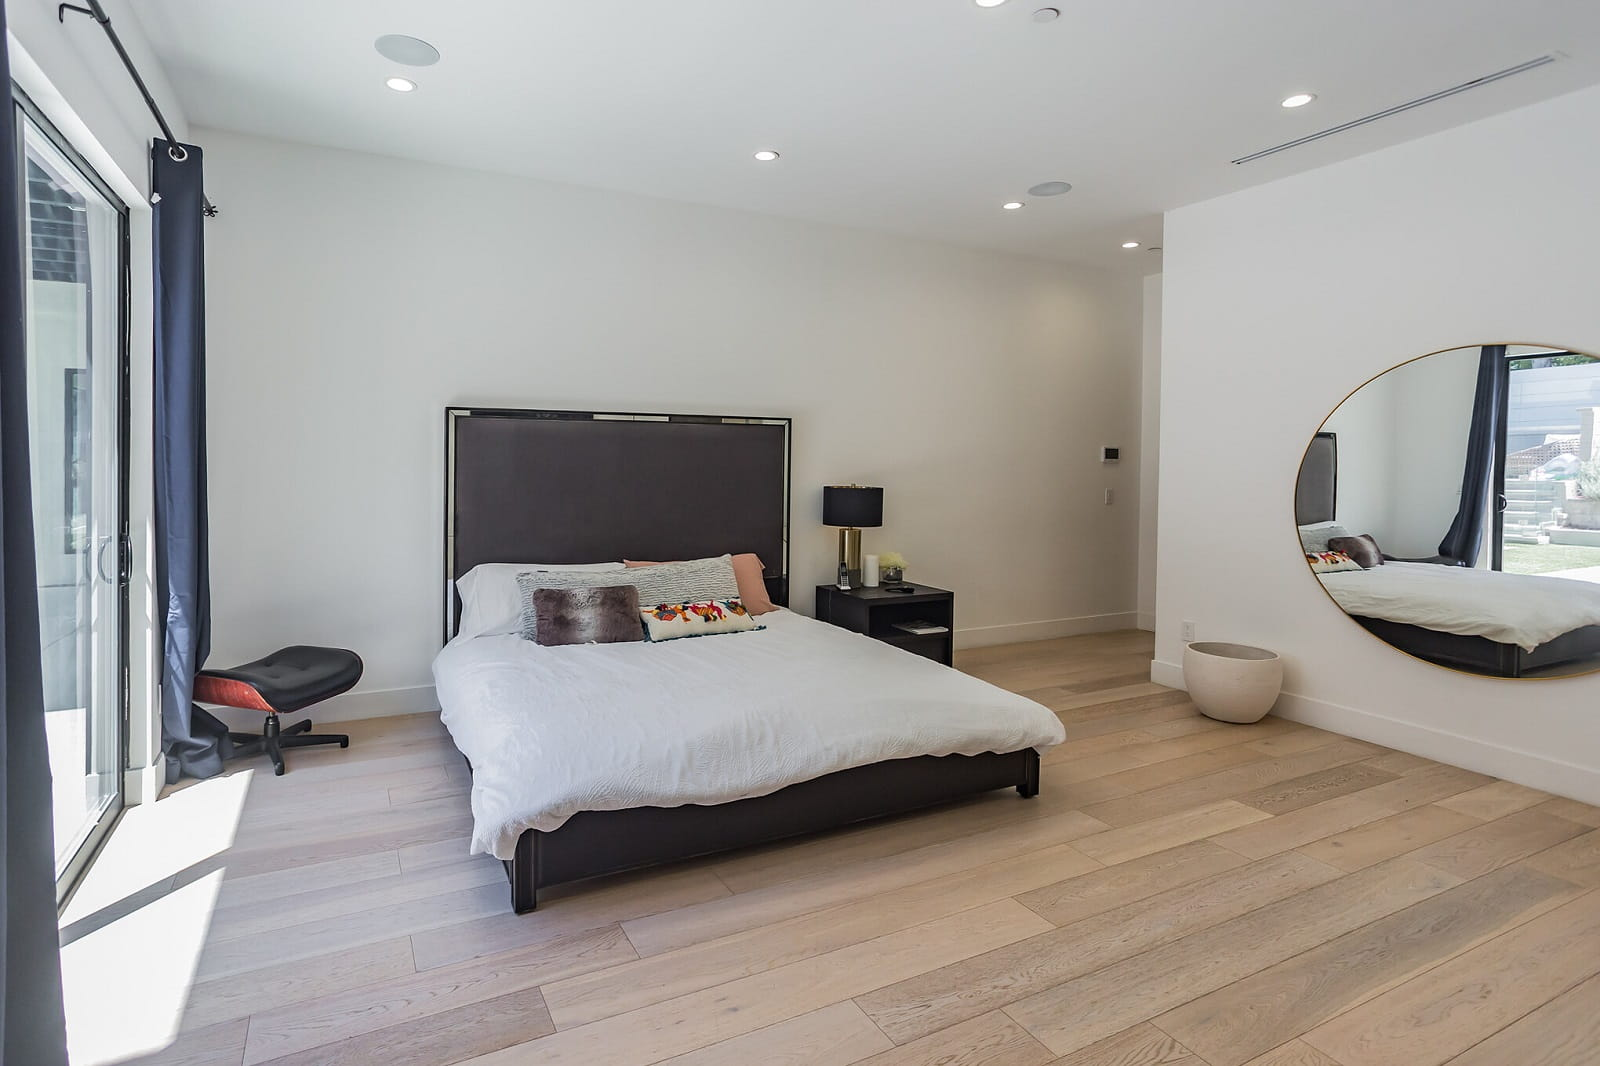 Real Estate Photography in Calabasas - CA - USA - Bedroom View